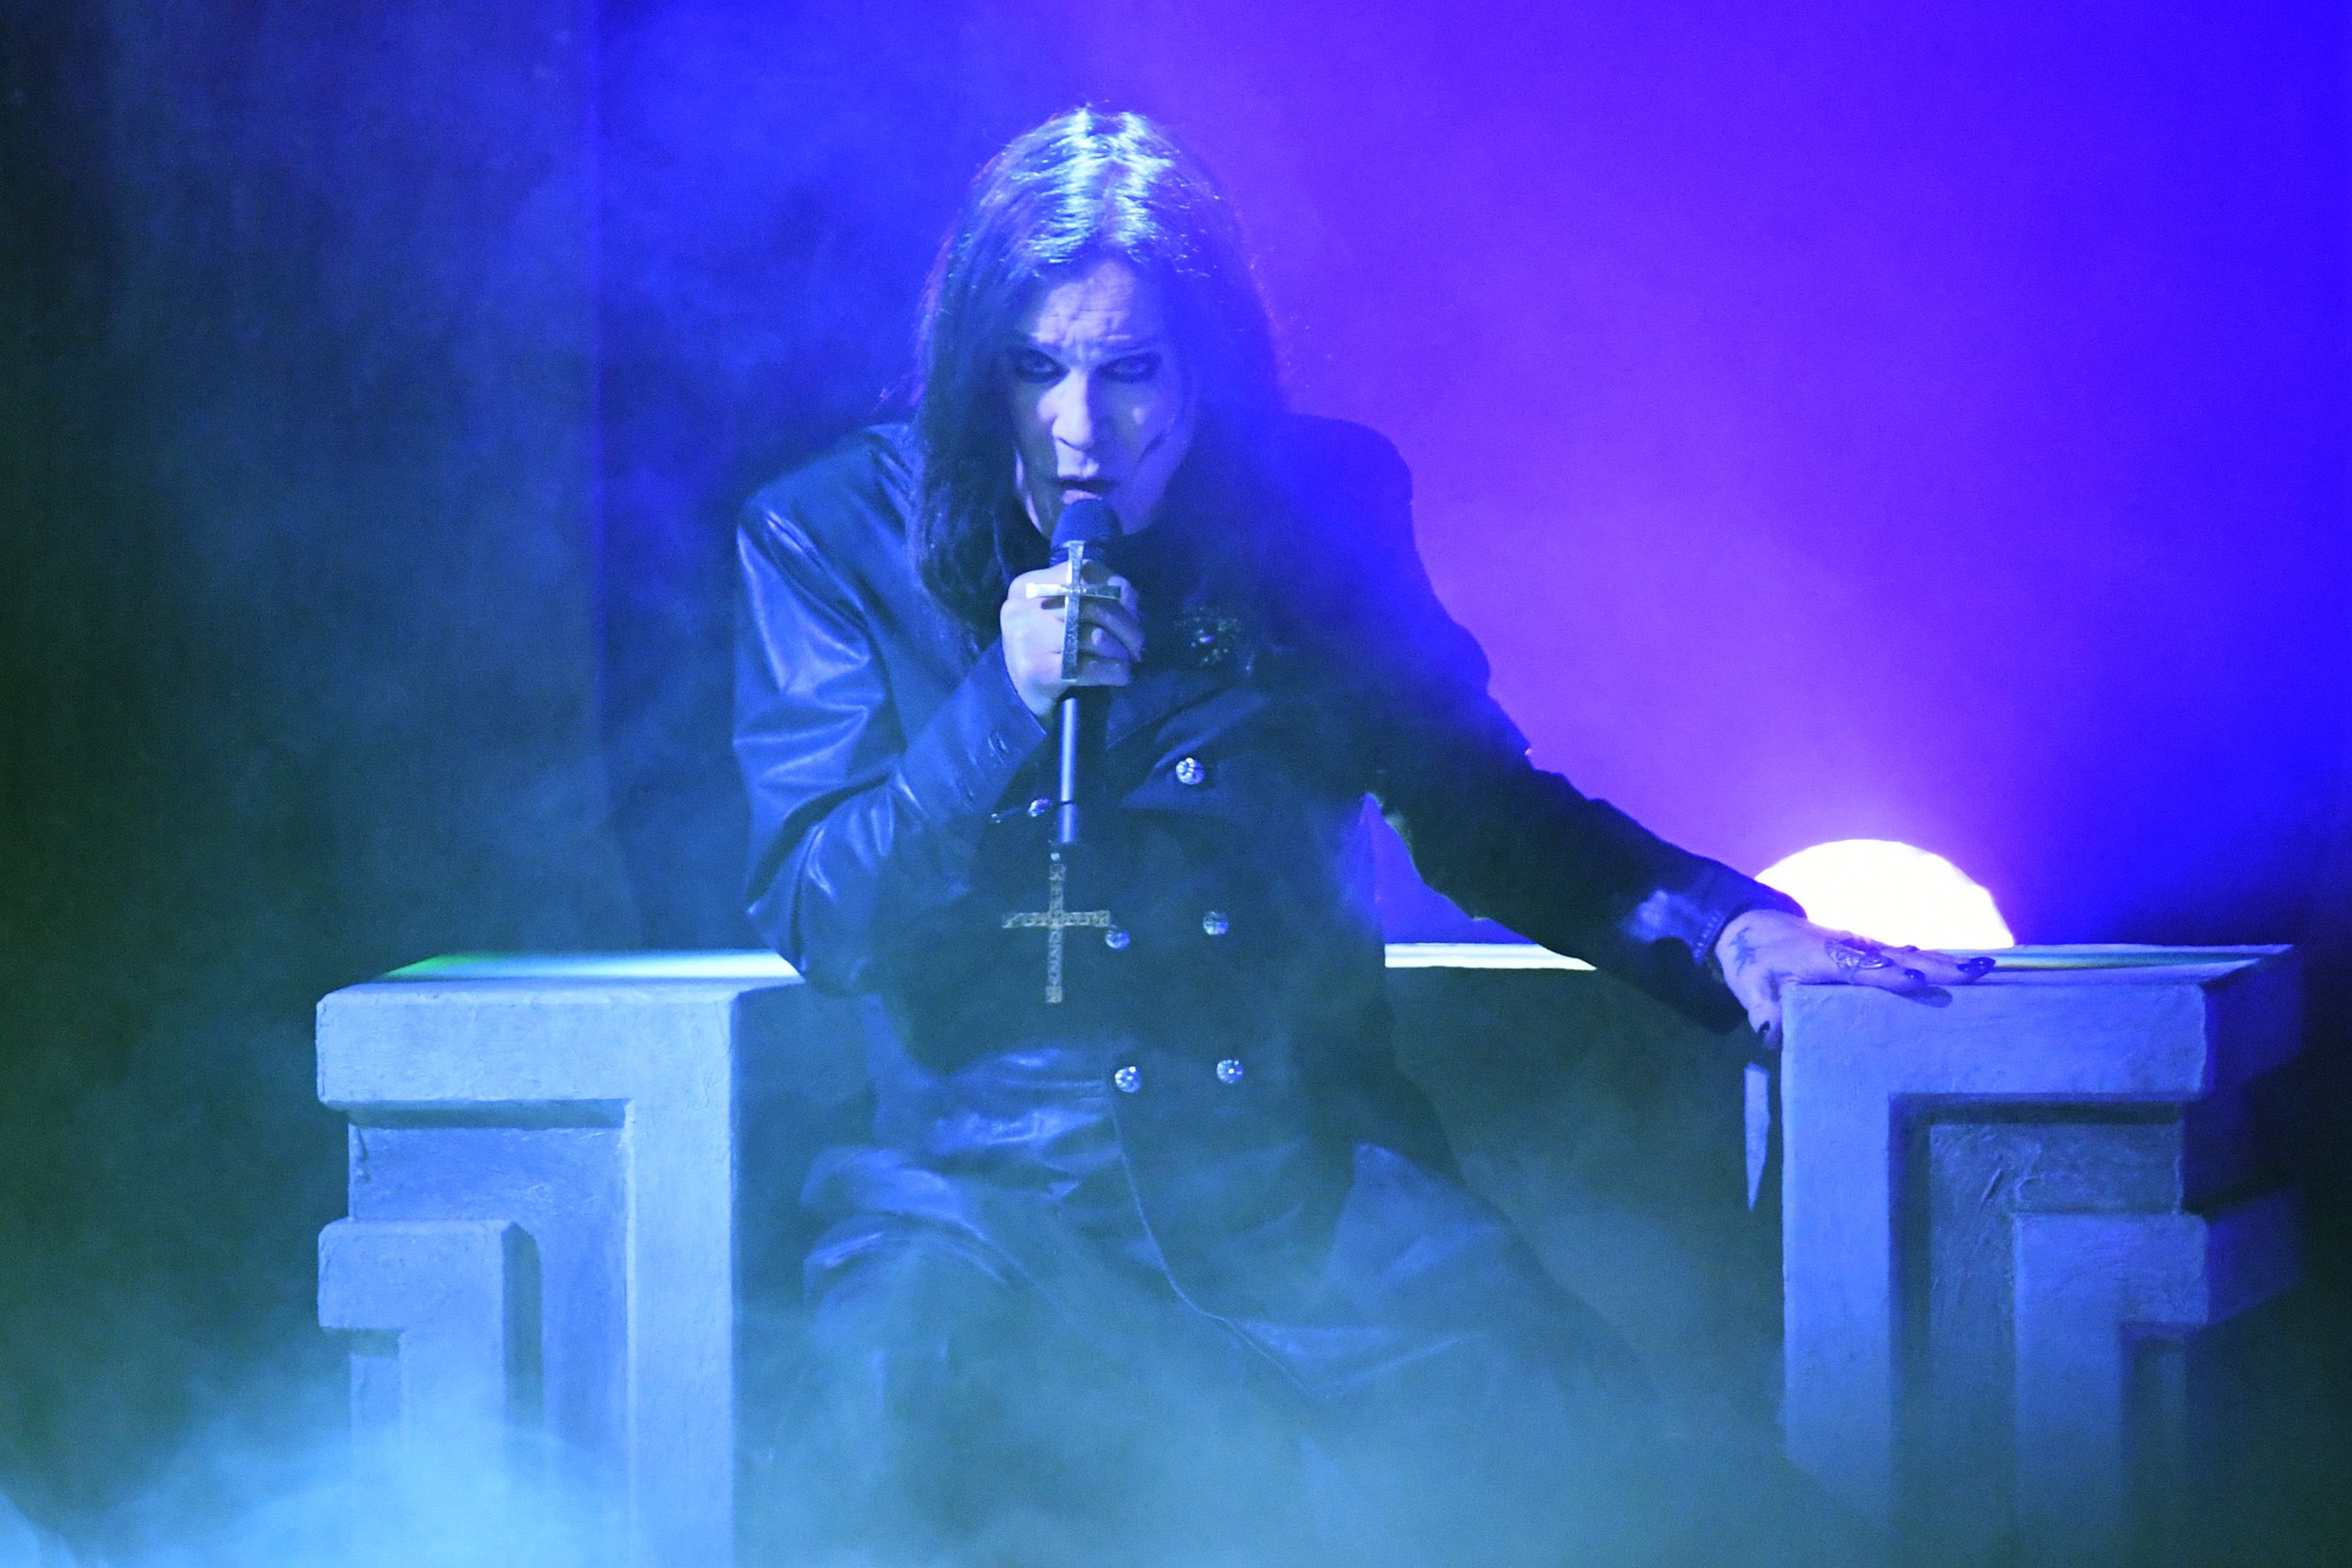 Ozzy Osbourne performing on stage.